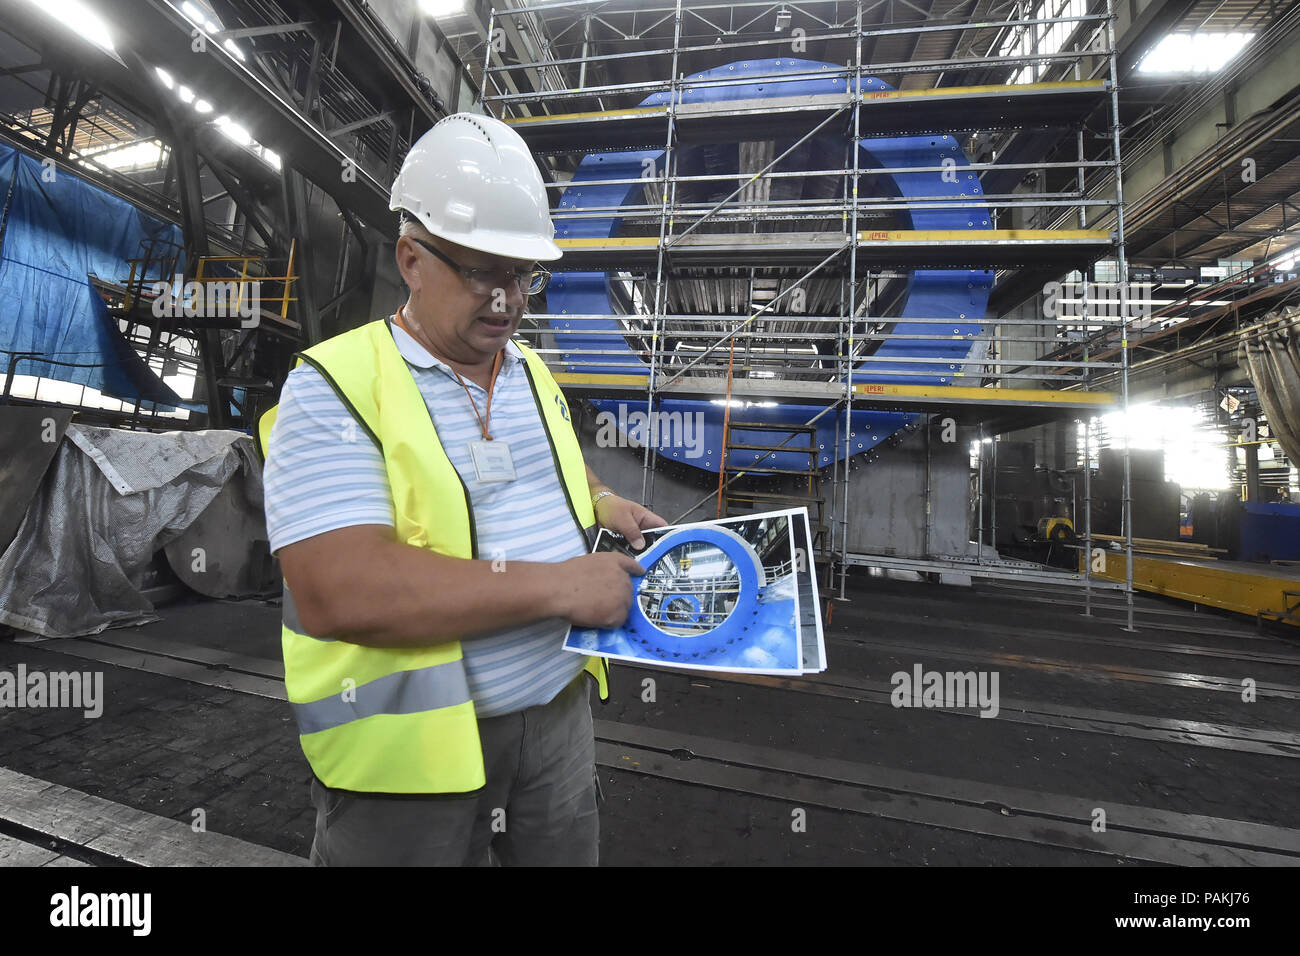 Ostrava, Czech Republic. 24th July, 2018. Press briefing on completion of prestigious project and providing magnet parts of particle accelerator for international nuclear research at Joint Institute for Nuclear Research (JINR) based in Russia took place in Vitkovice Heavy Machinery (VHM) production plant on July 24, 2018, in Ostrava, Czech Republic. On the photo is seen Nikolay Topilin of JINR. (CTK Jaroslav Ozana) - Stock Image